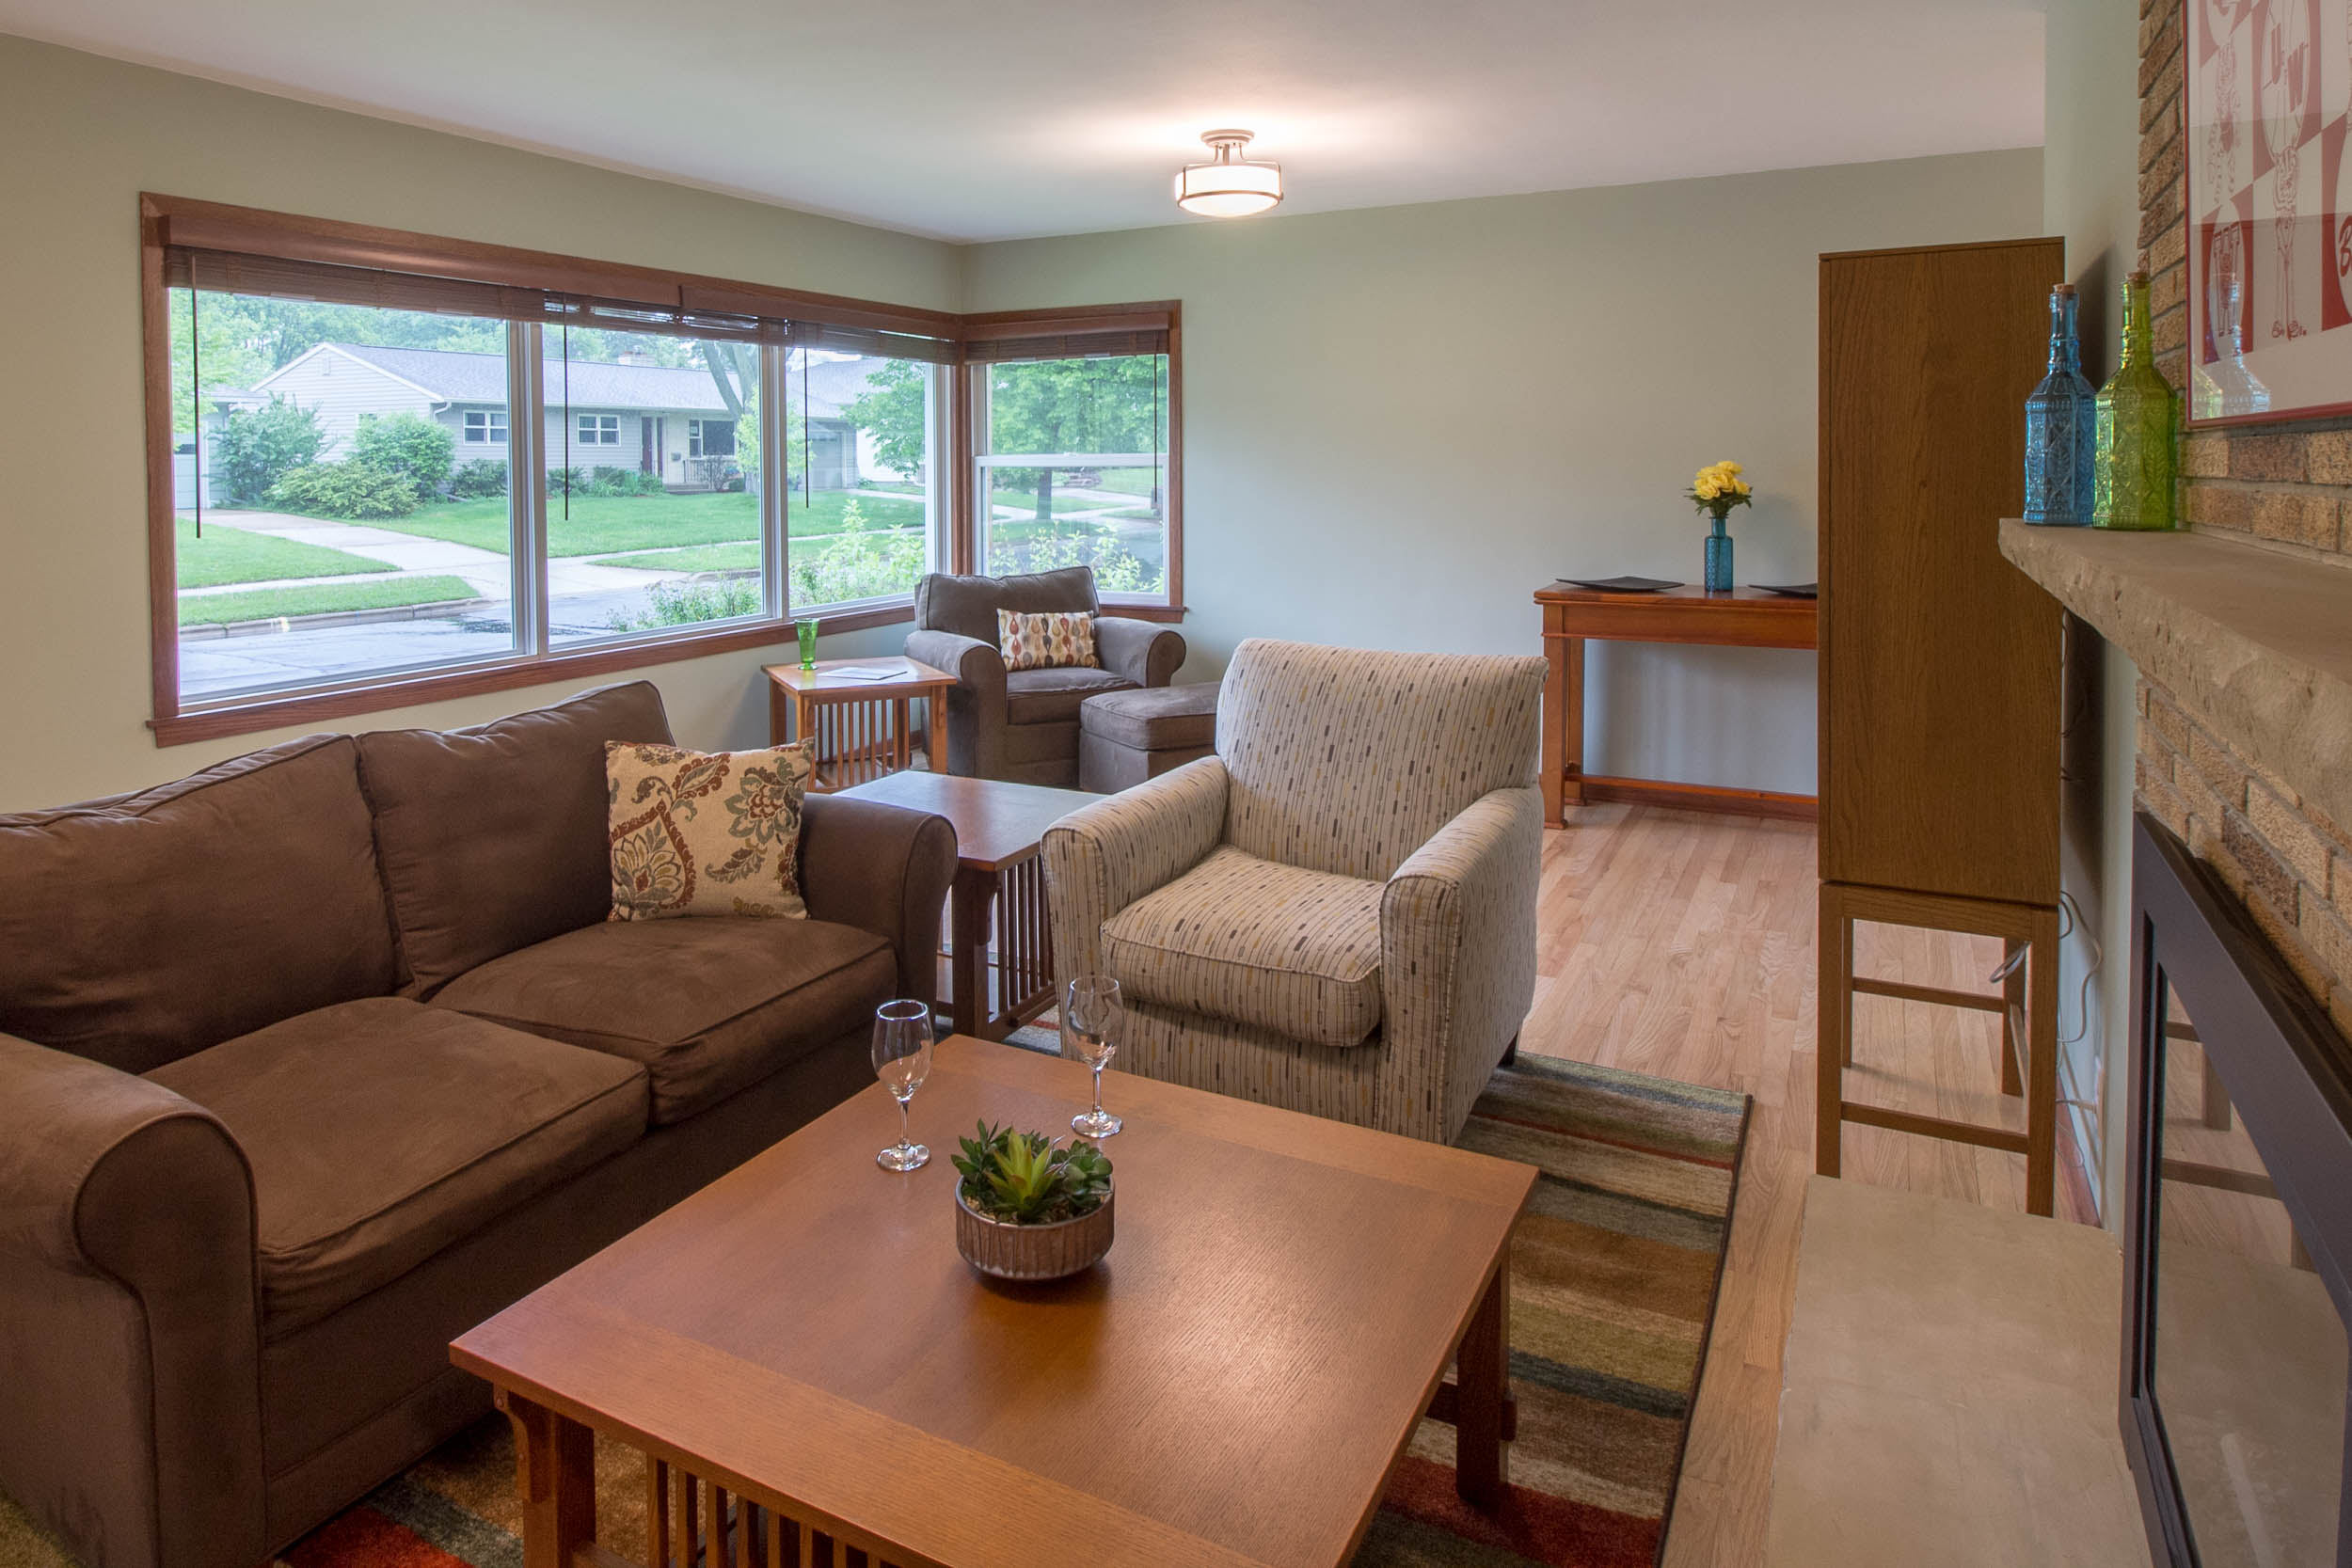 Living Room Remodel with large Windows Midvale Heights Madison, WI